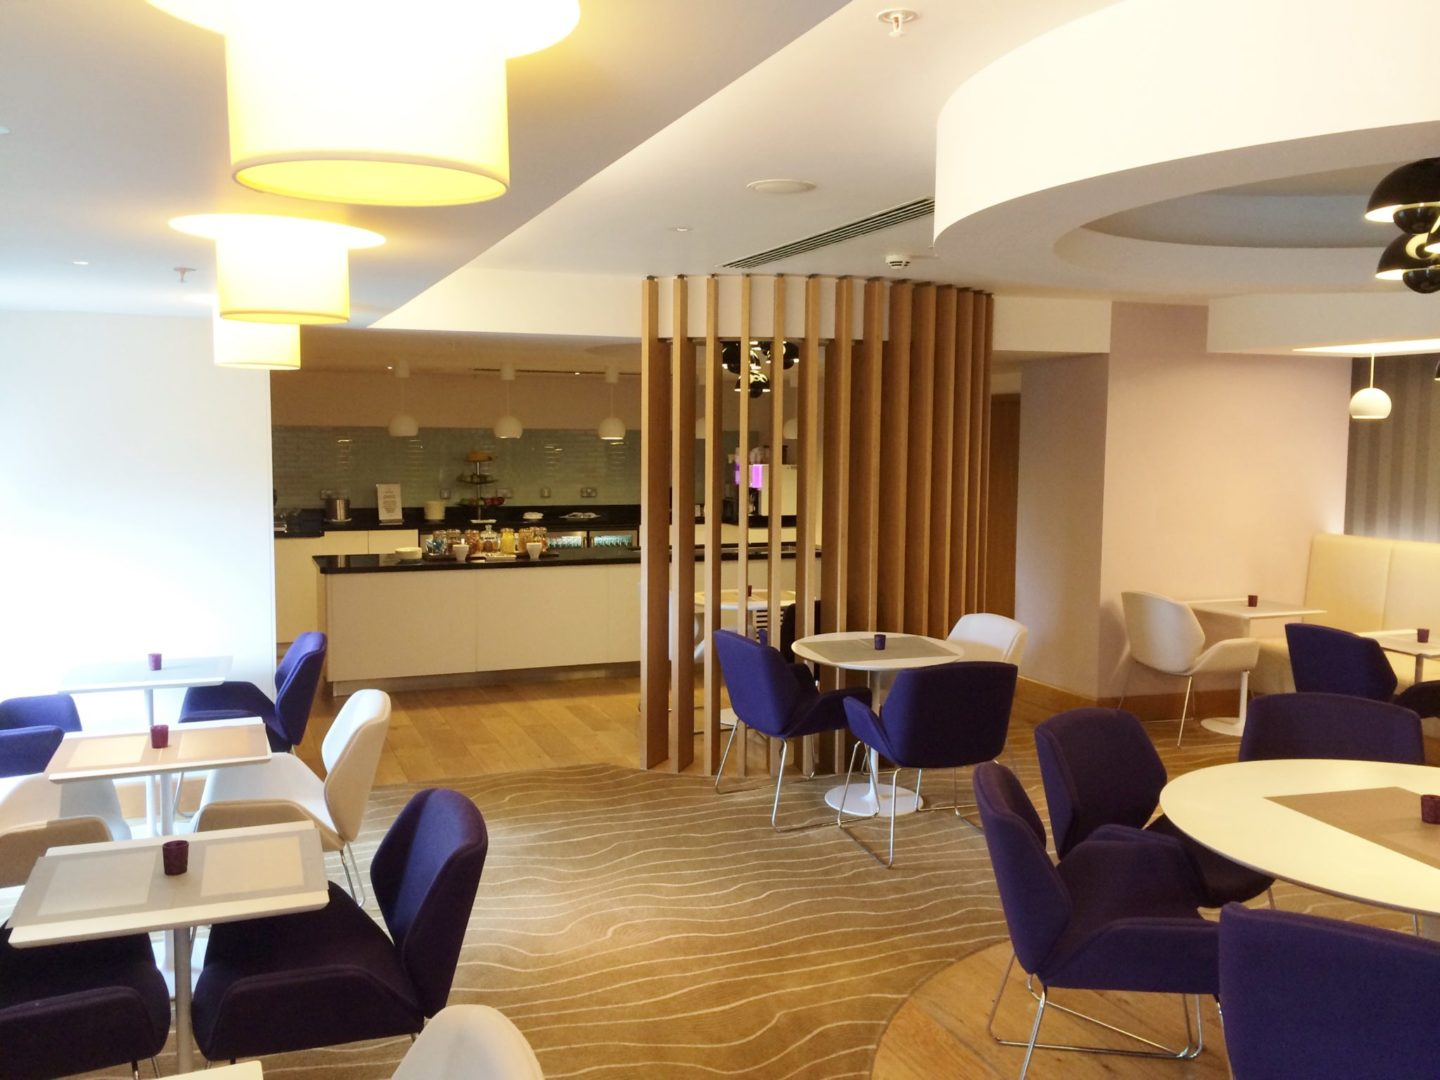 Rooms Review: Hilton Heathrow T5 Hotel Terminal 5 Executive Rooms